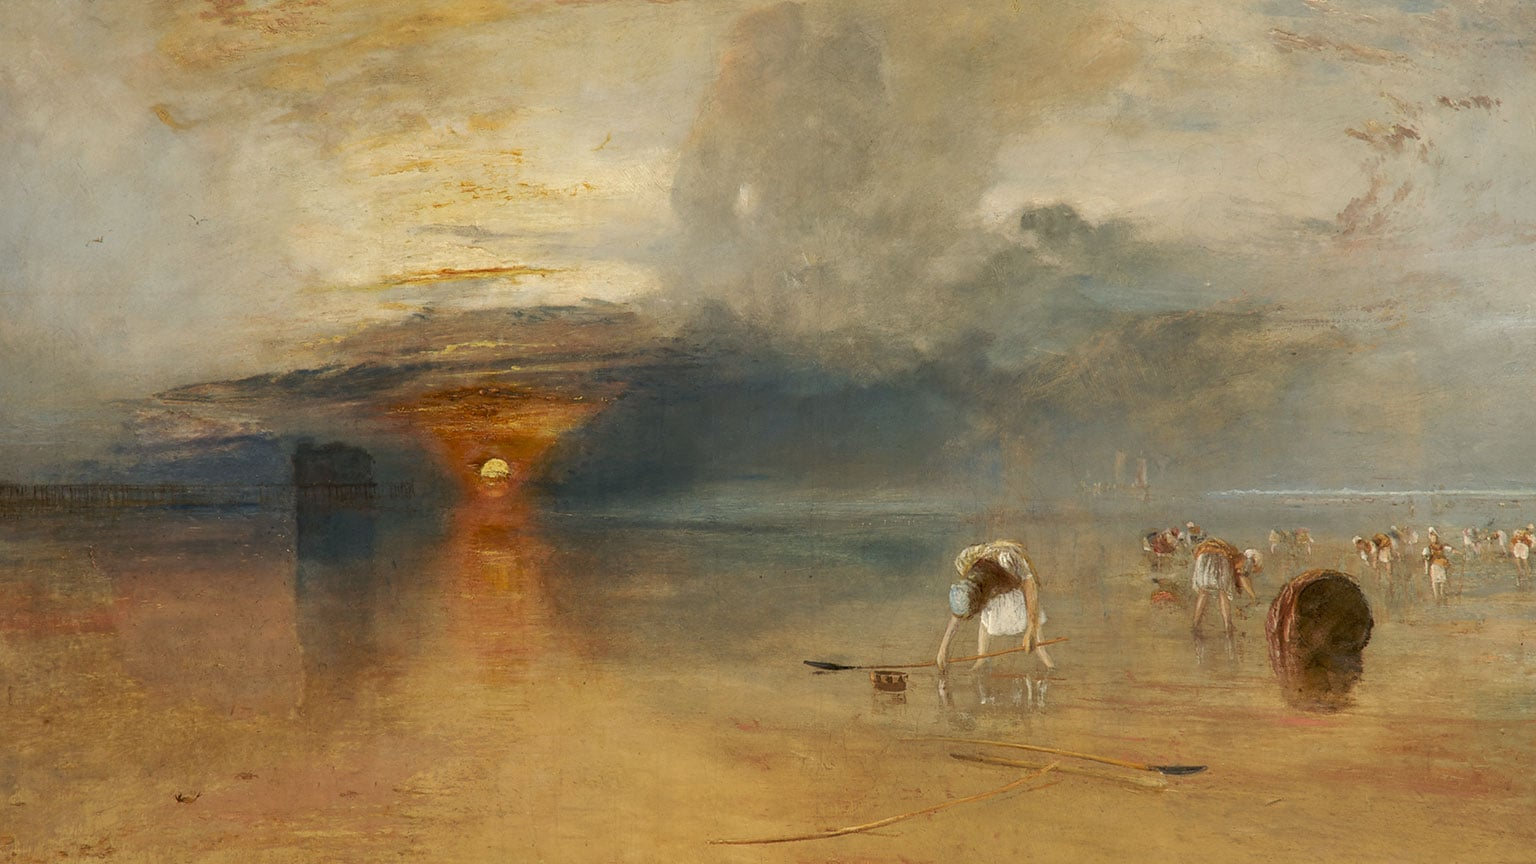 JMW Turner, Calais Sands at Low Water: Poissards Collecting Bait, 1830